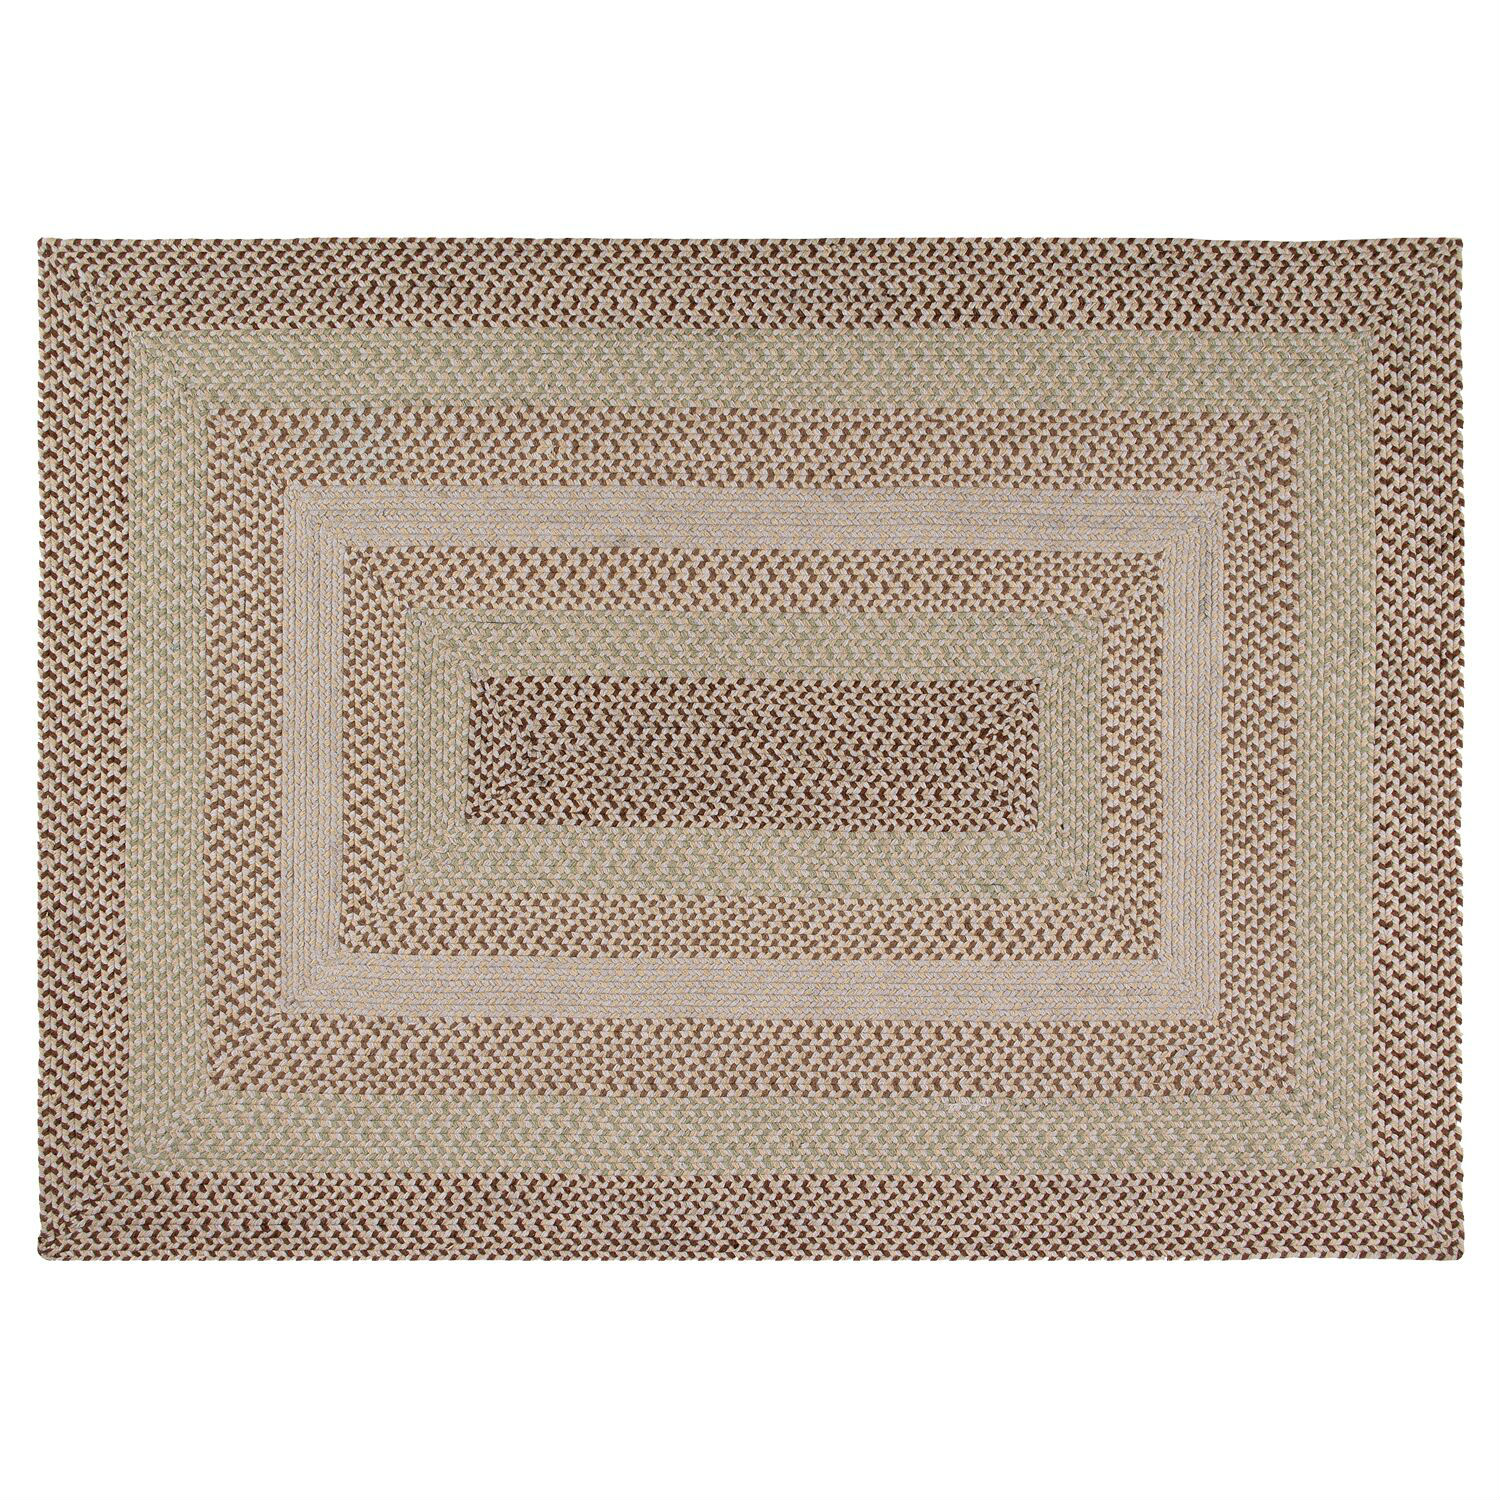 "Woodbridge 20"" x 30"" Braided Rug - Green"